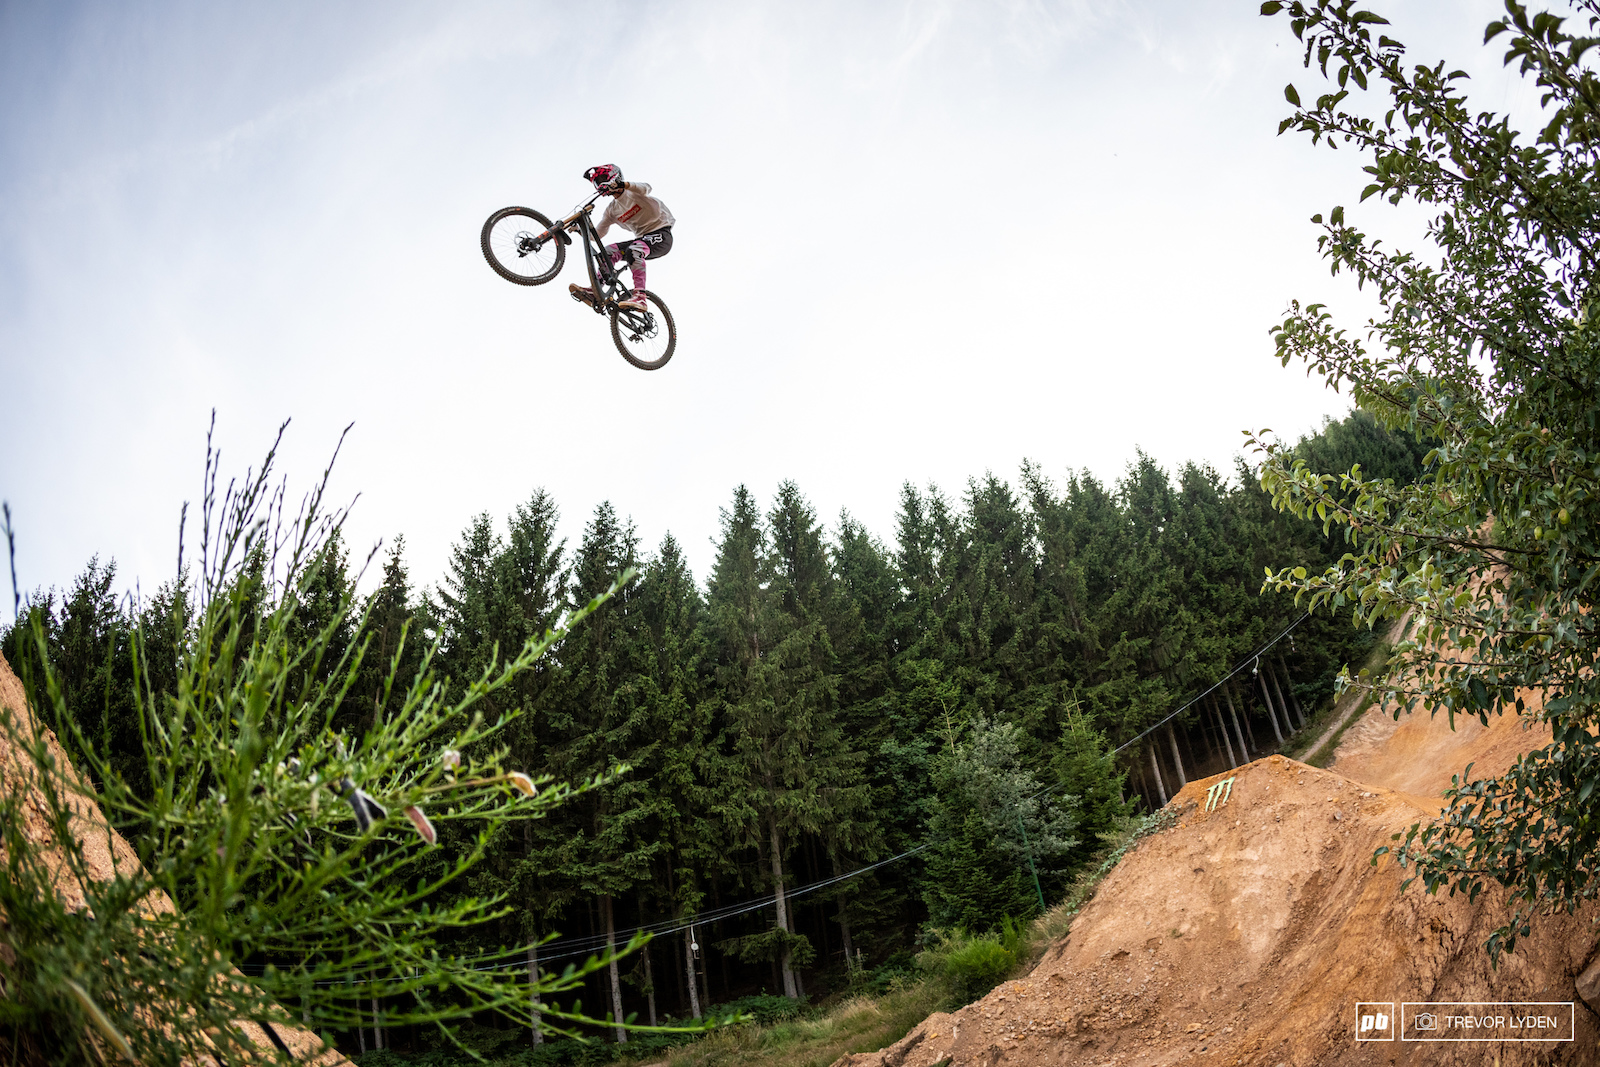 Kaos looking right at home on the big jumps.